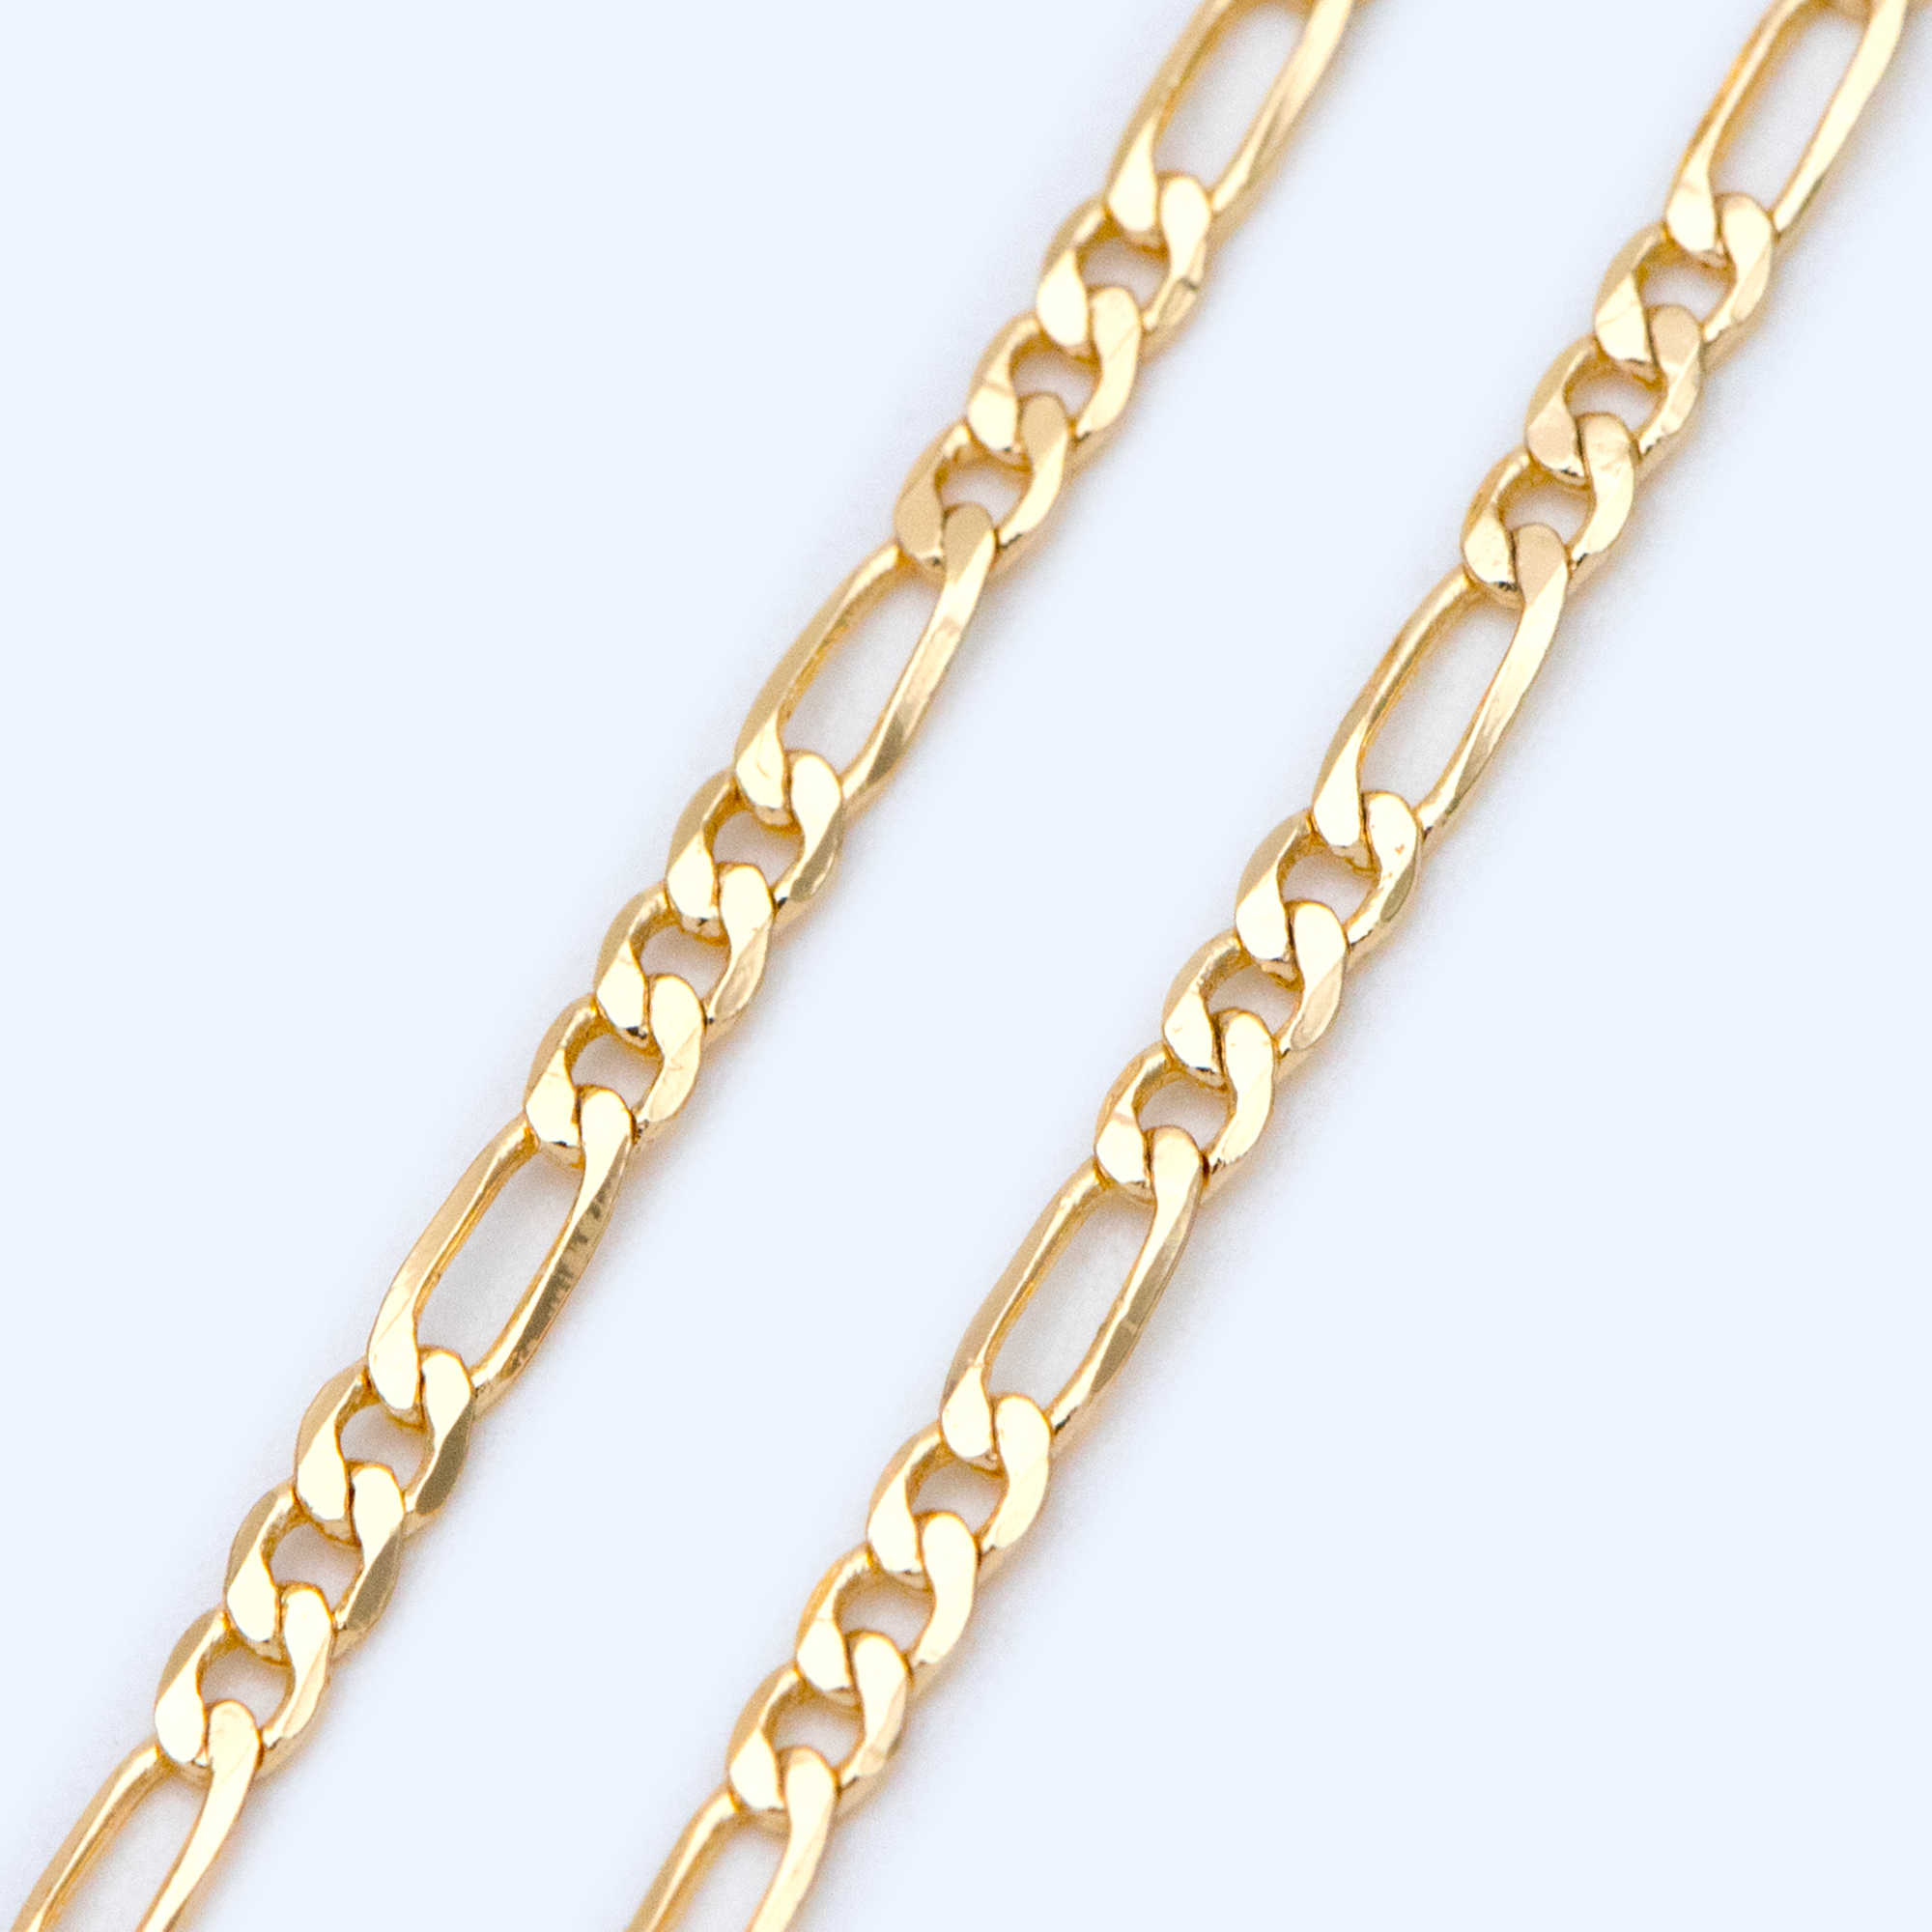 Wholesale Silver Platinum Copper Rose Gold Beads Crafts Jewelry Making Chains